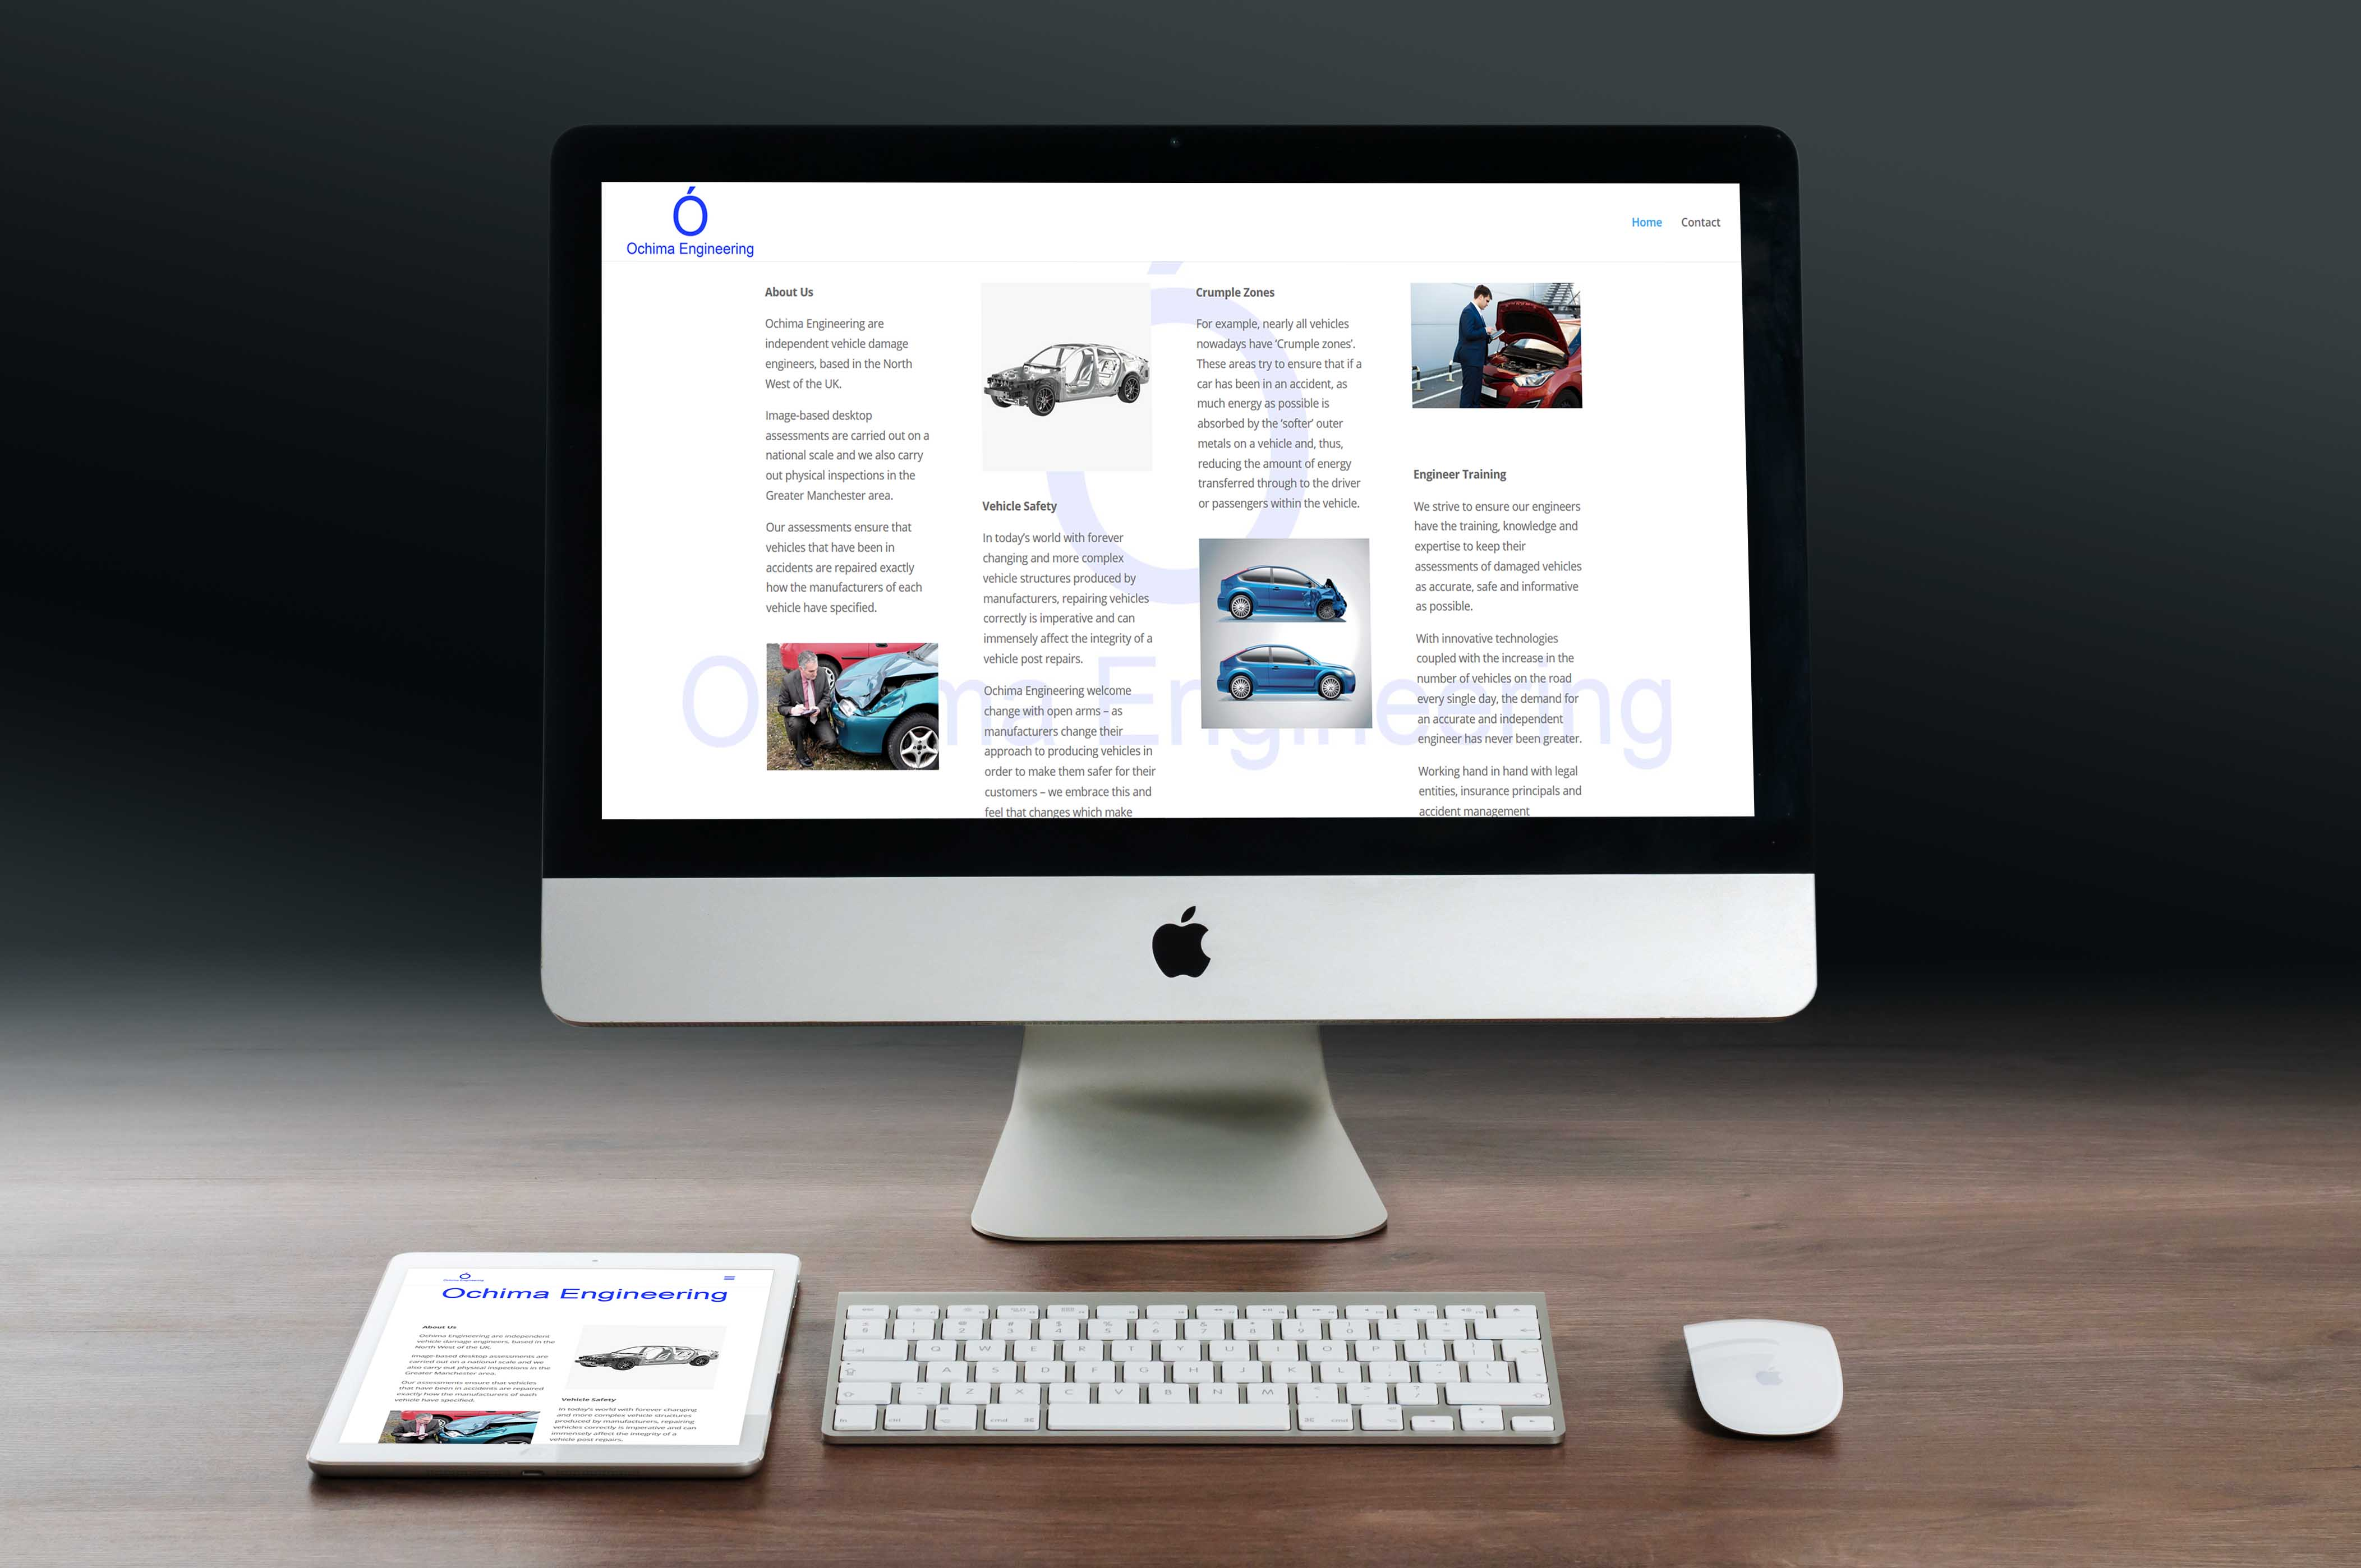 A Mac and a tablet sitting on a wooden table each displaying the same website - ochimaengineering.co.uk